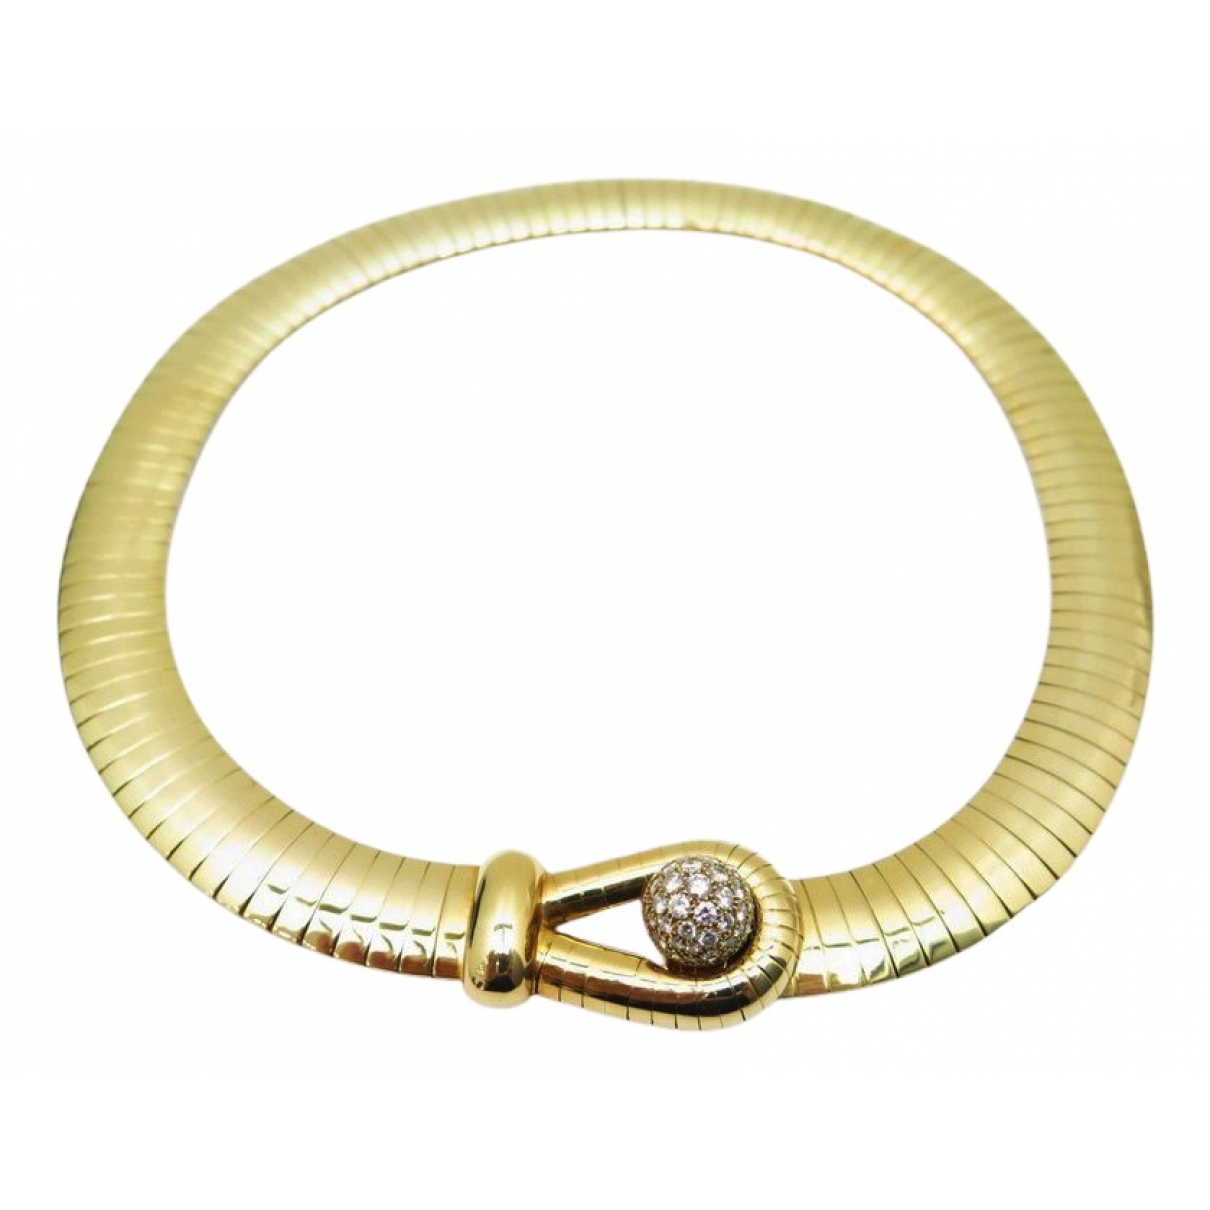 Chaumet \N Kette in  Gold Gelbgold